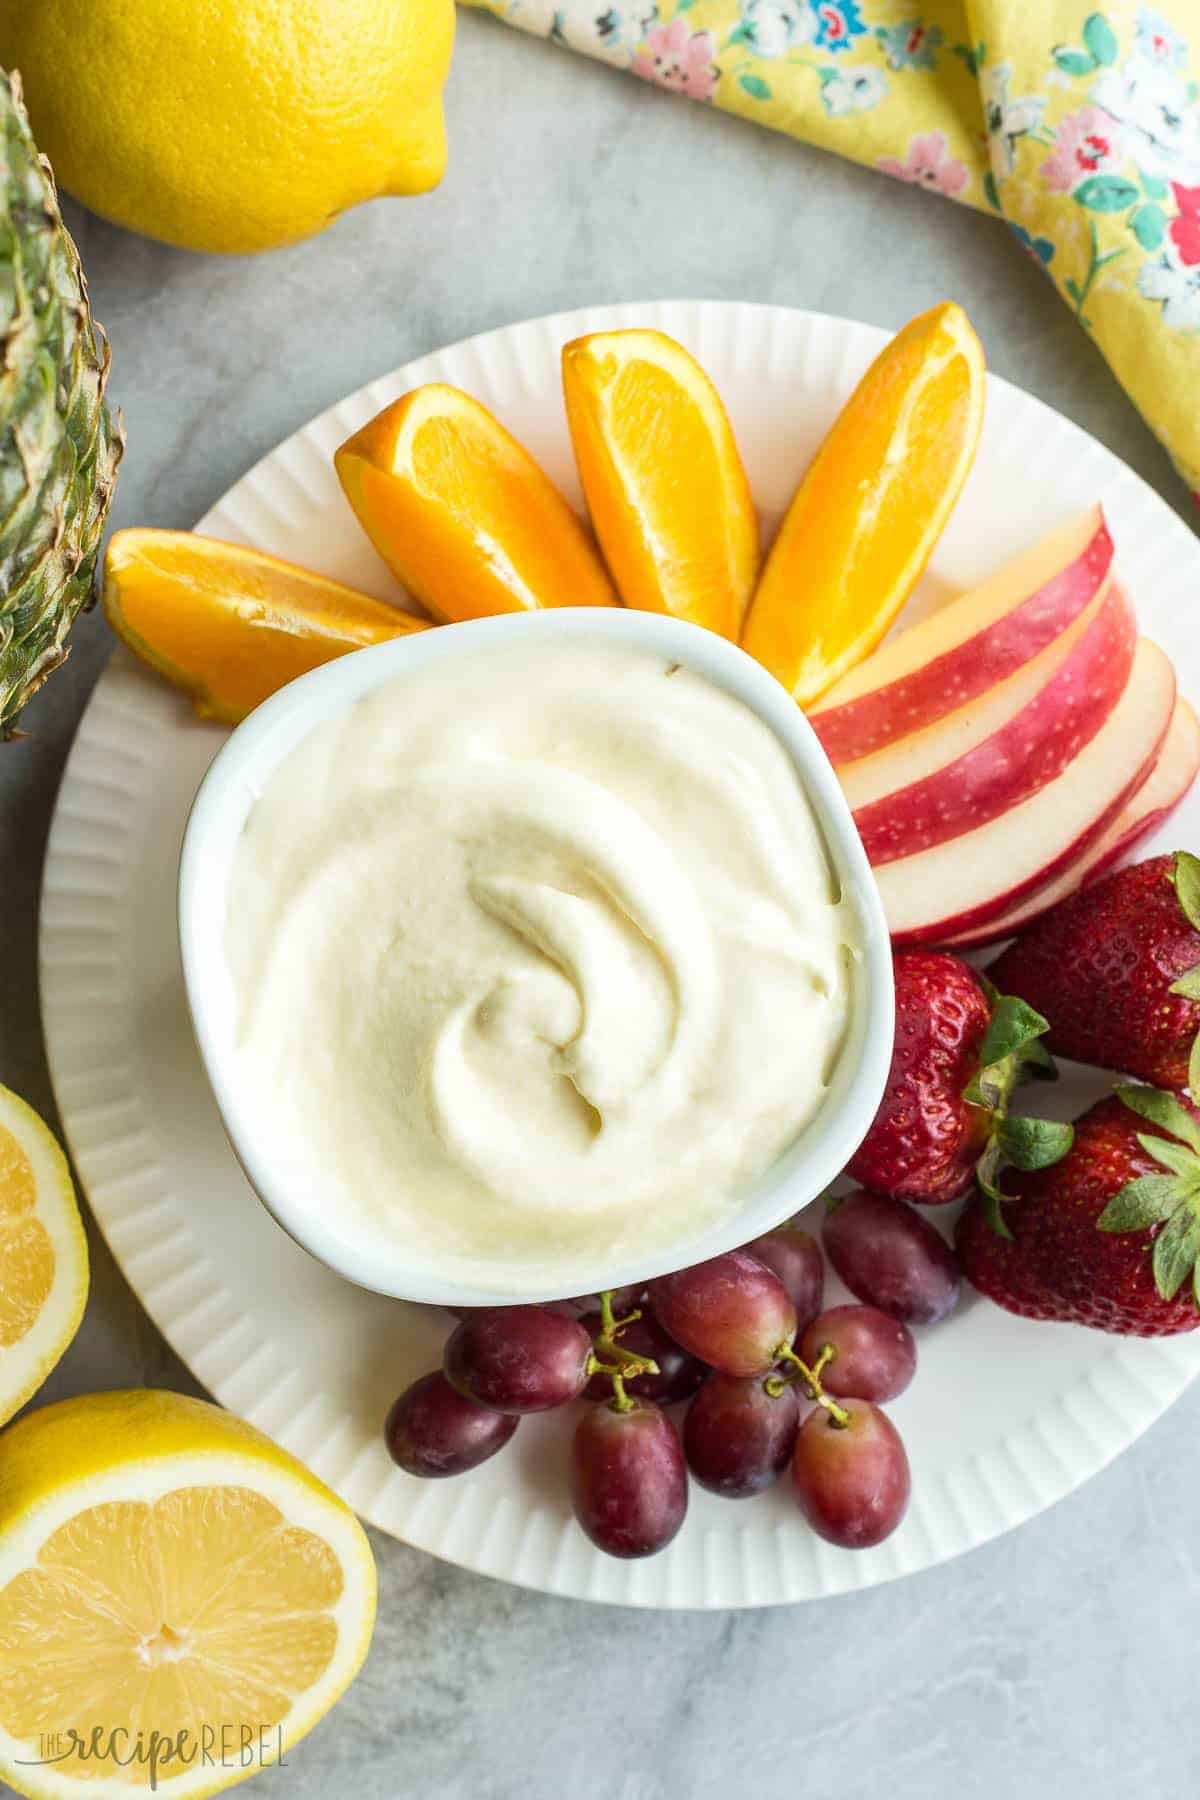 This creamy Pineapple Lemonade fruit dip is made with a homemade pineapple lemon curd and whipped cream! Change up the fruit juice flavors to make any kind!